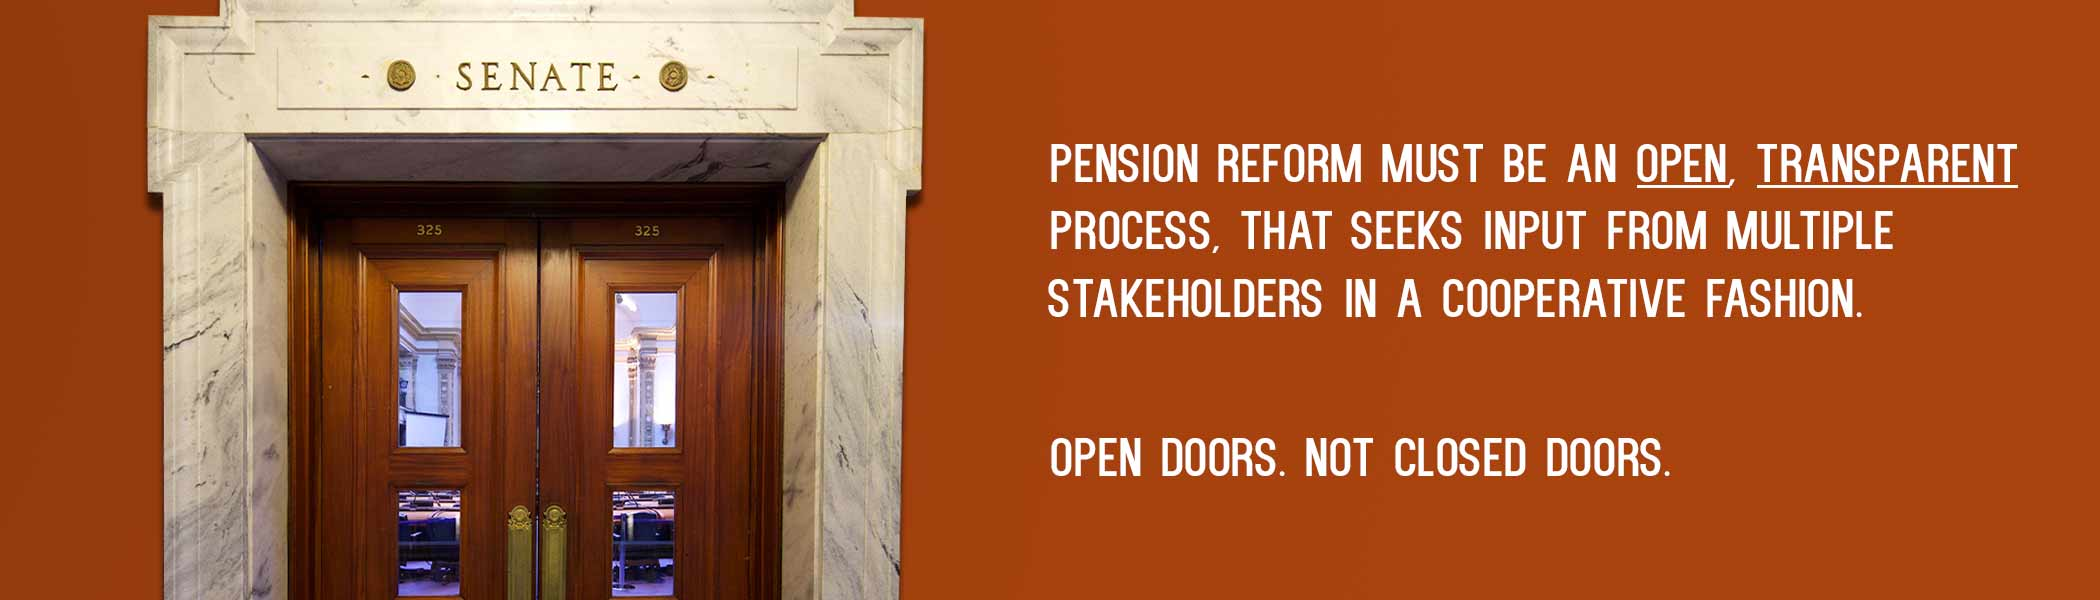 """Picture of closed doors to Kentucky Senate chamber. Copy reads, """"Pension Reform must be an open, transparent process, that seeks input from multiple stakeholders in a cooperative fashion. Open doors. not closed doors."""""""